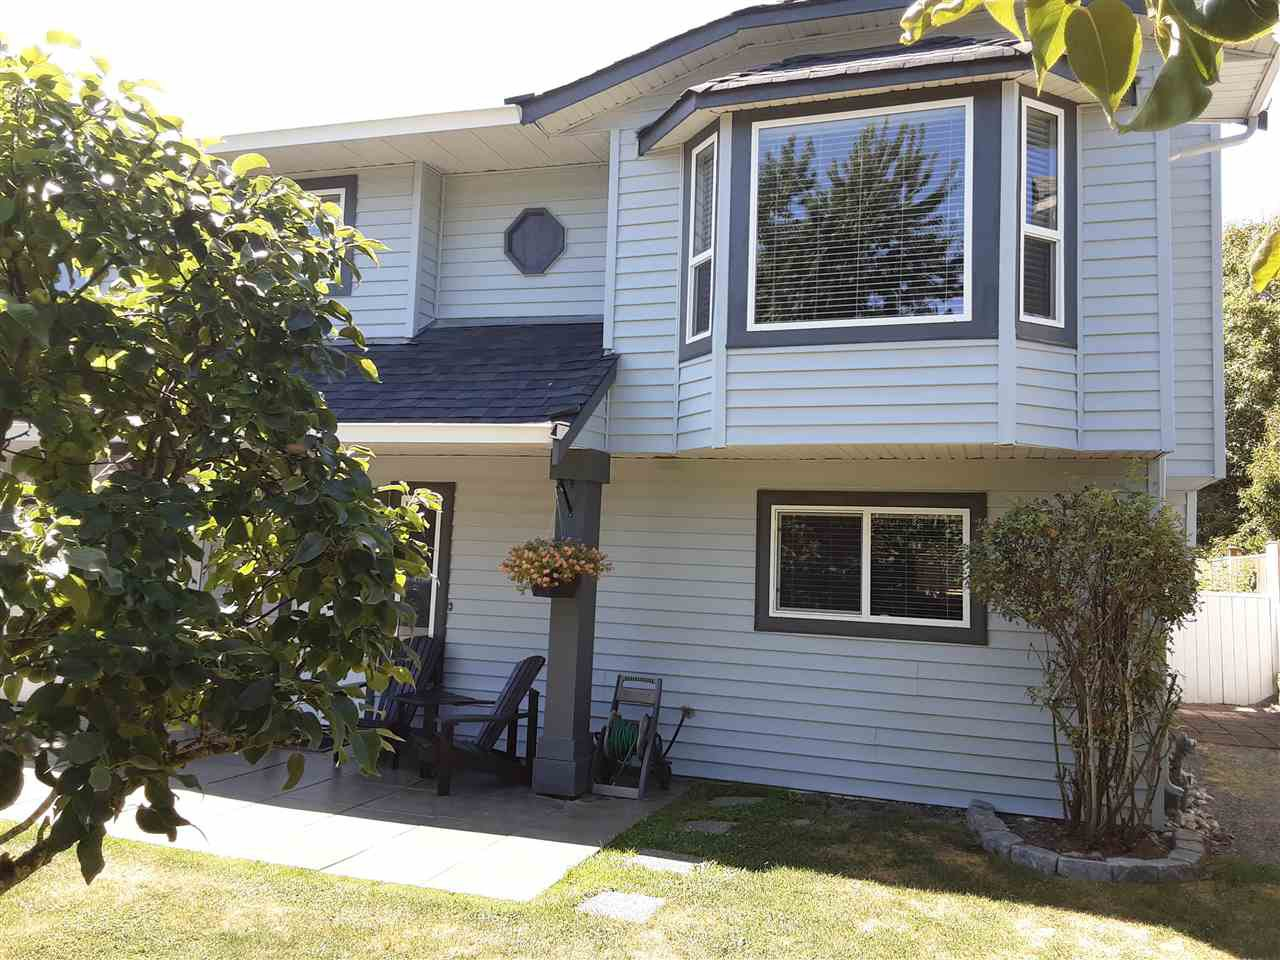 Photo 4: Photos: 3287 274 Street in Langley: Aldergrove Langley House for sale : MLS®# R2484329